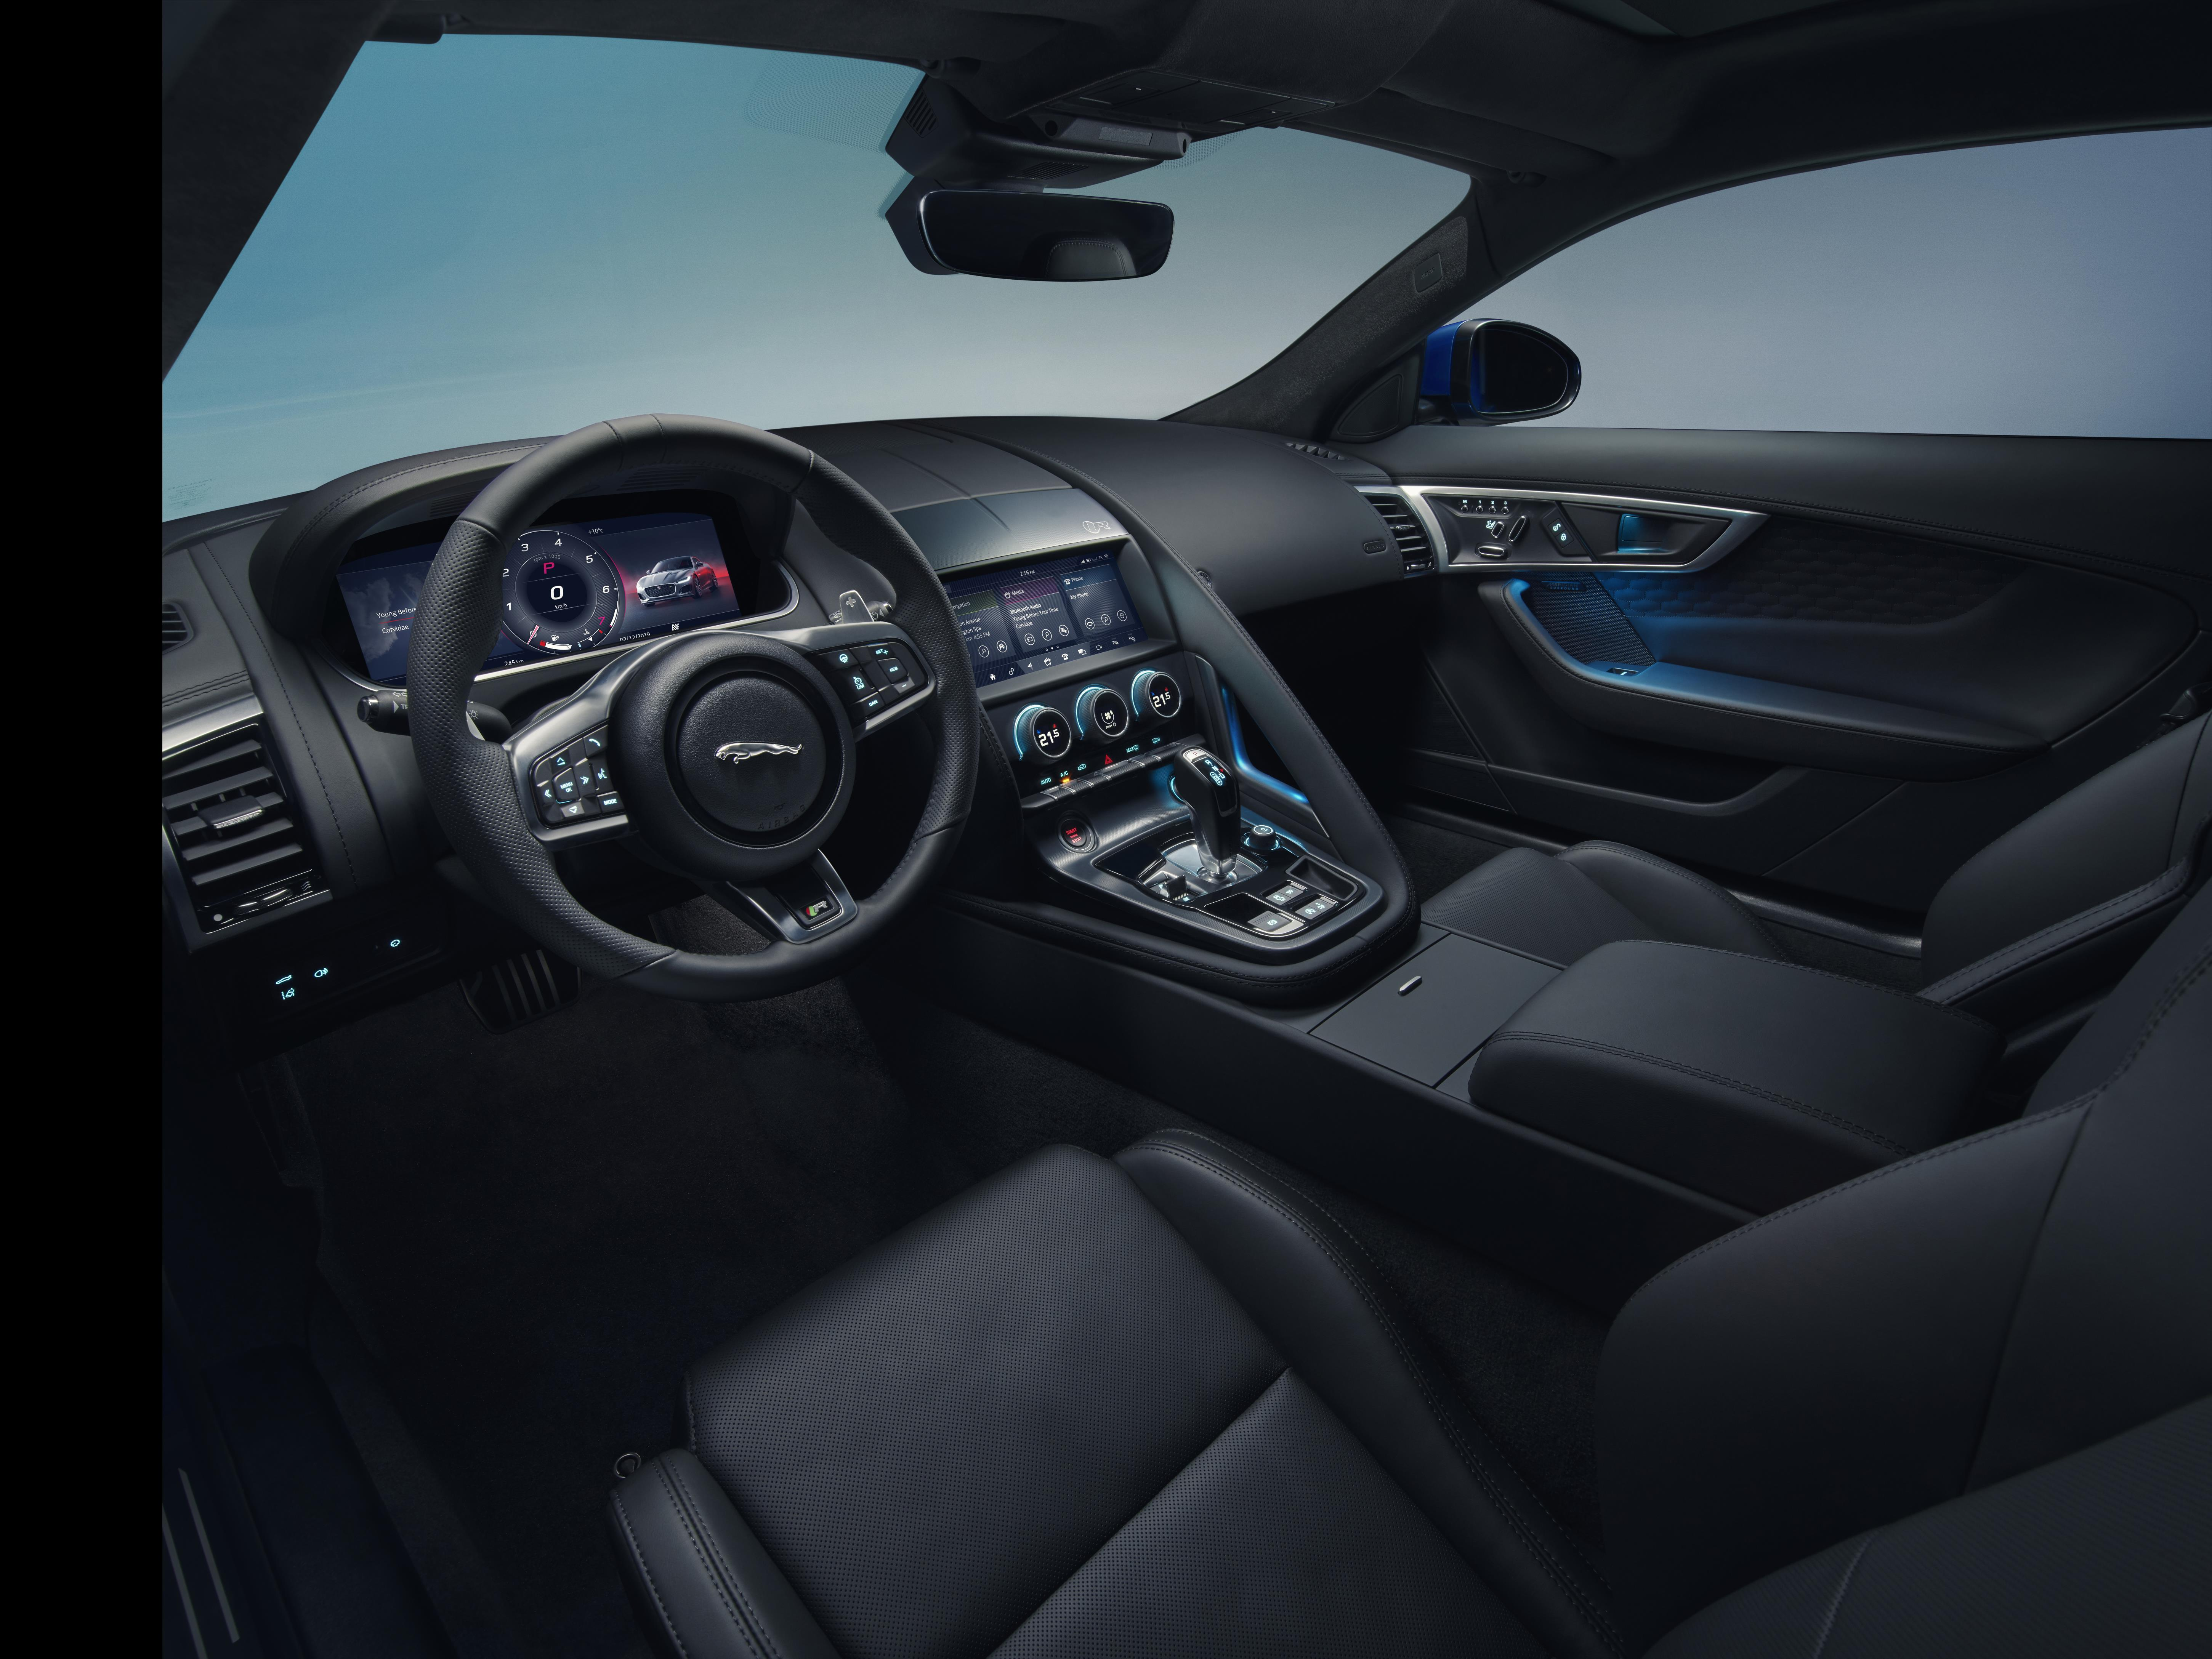 A huge new driver display features in the cabin